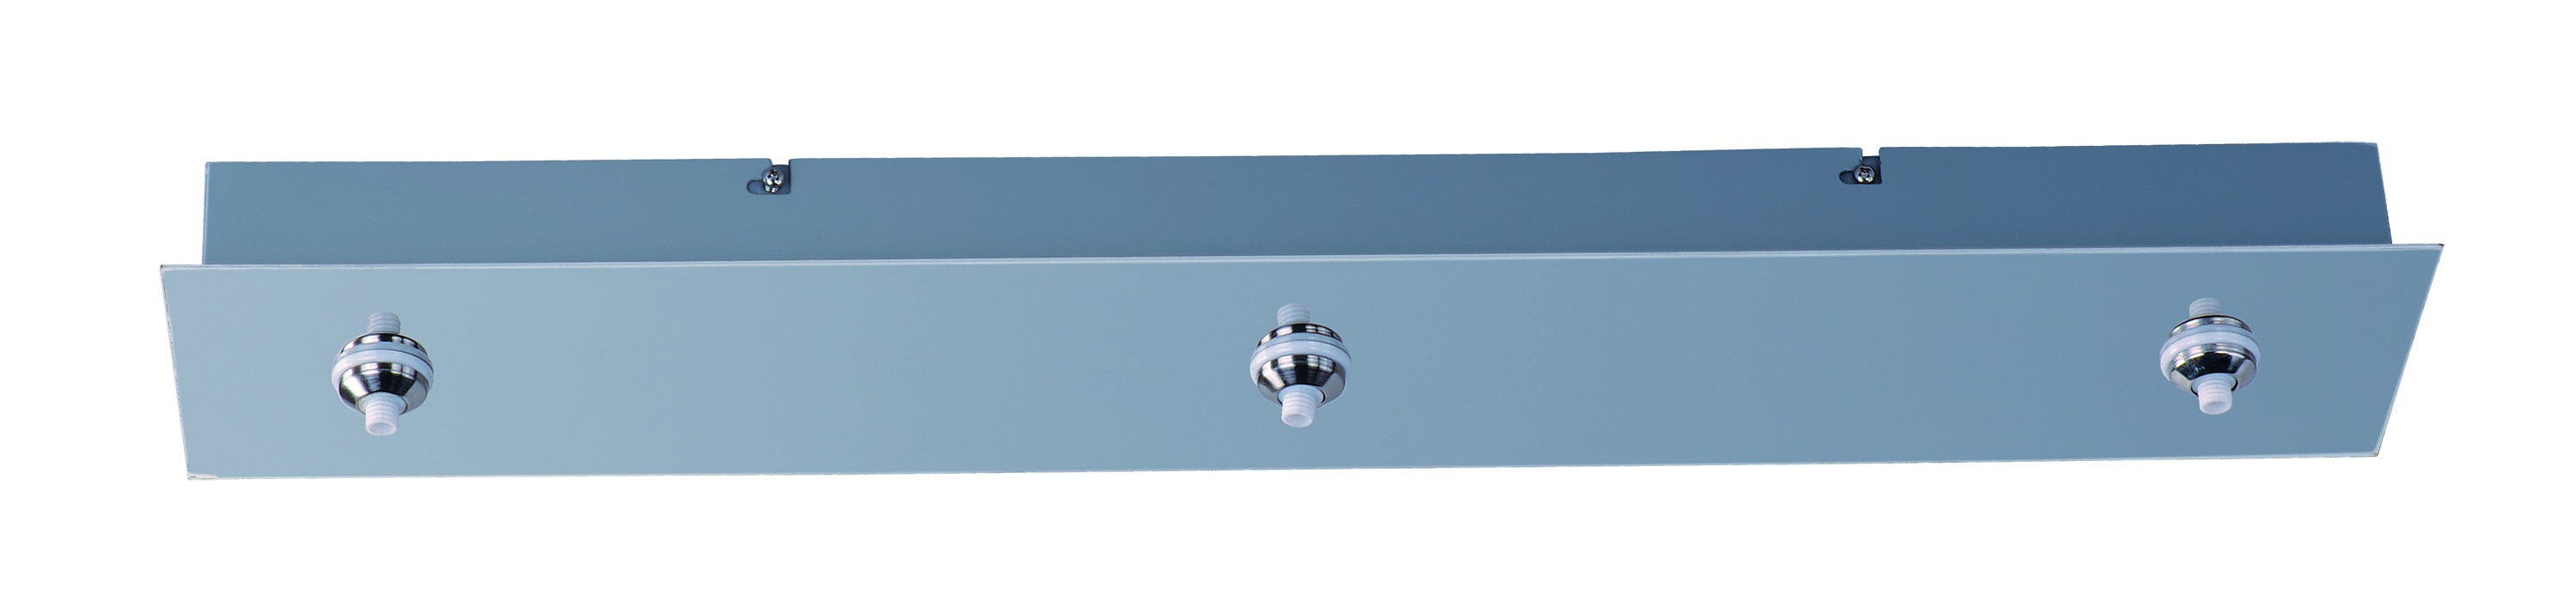 Canopy from the RapidJack LED collection by ET2 EC85013 PC